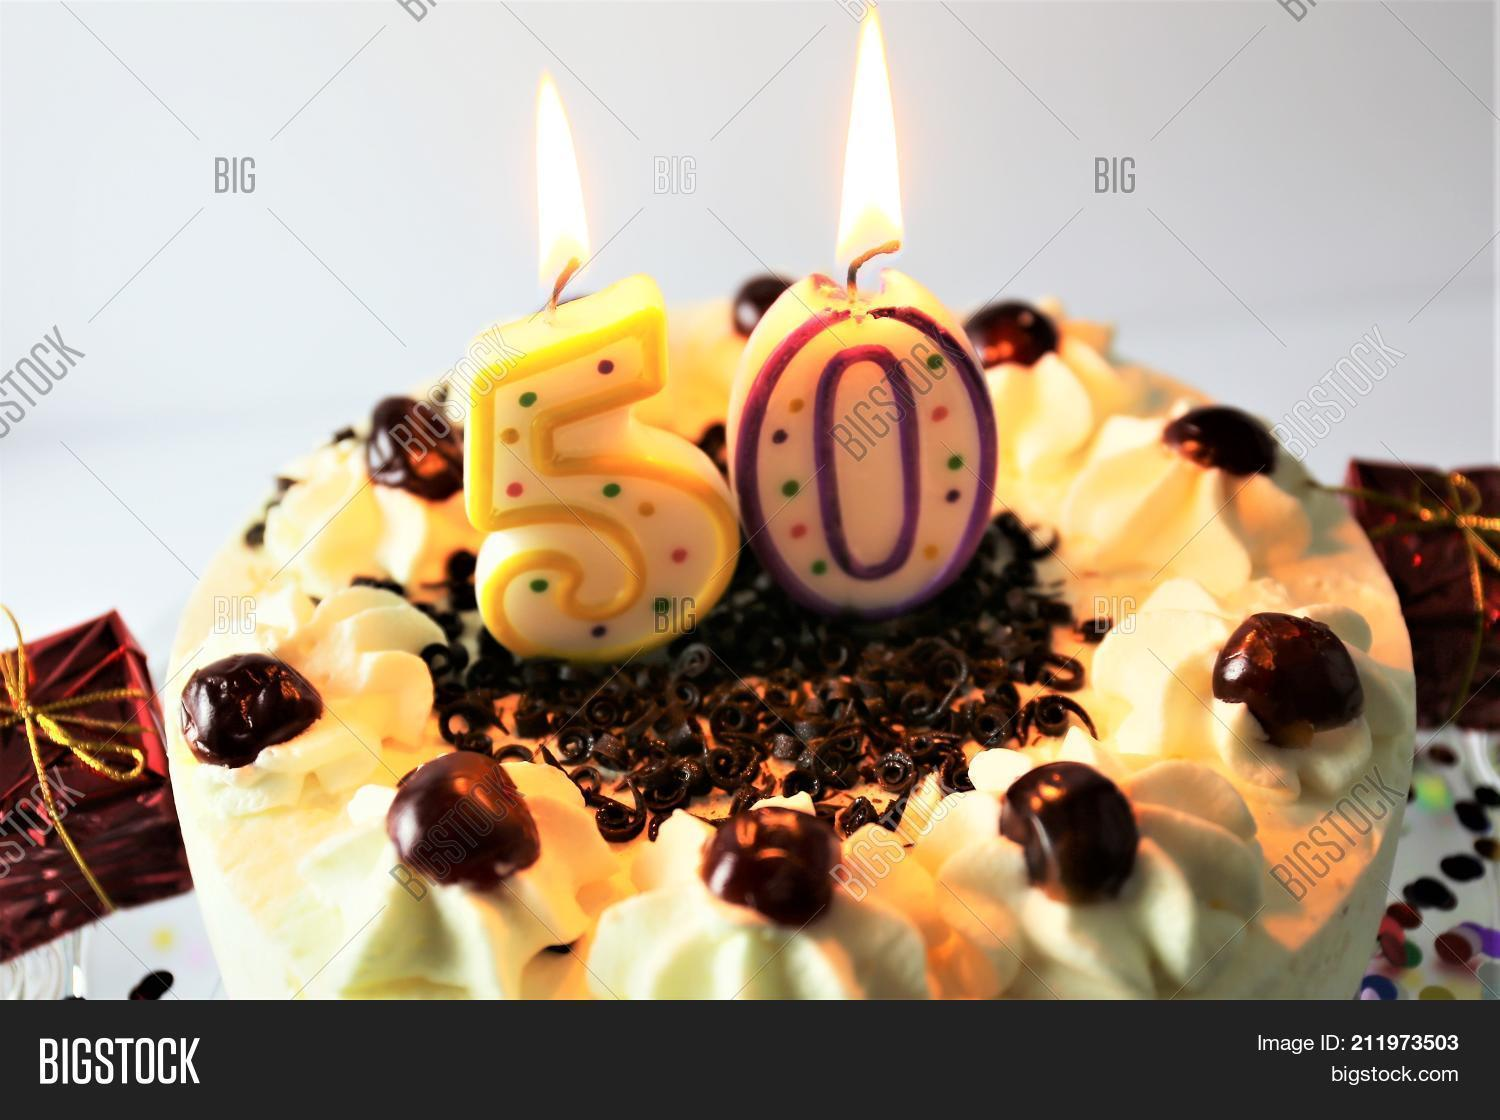 50 NEW LARGE Birthday Cake Candles Tortenfiguren Party Eventdekoration